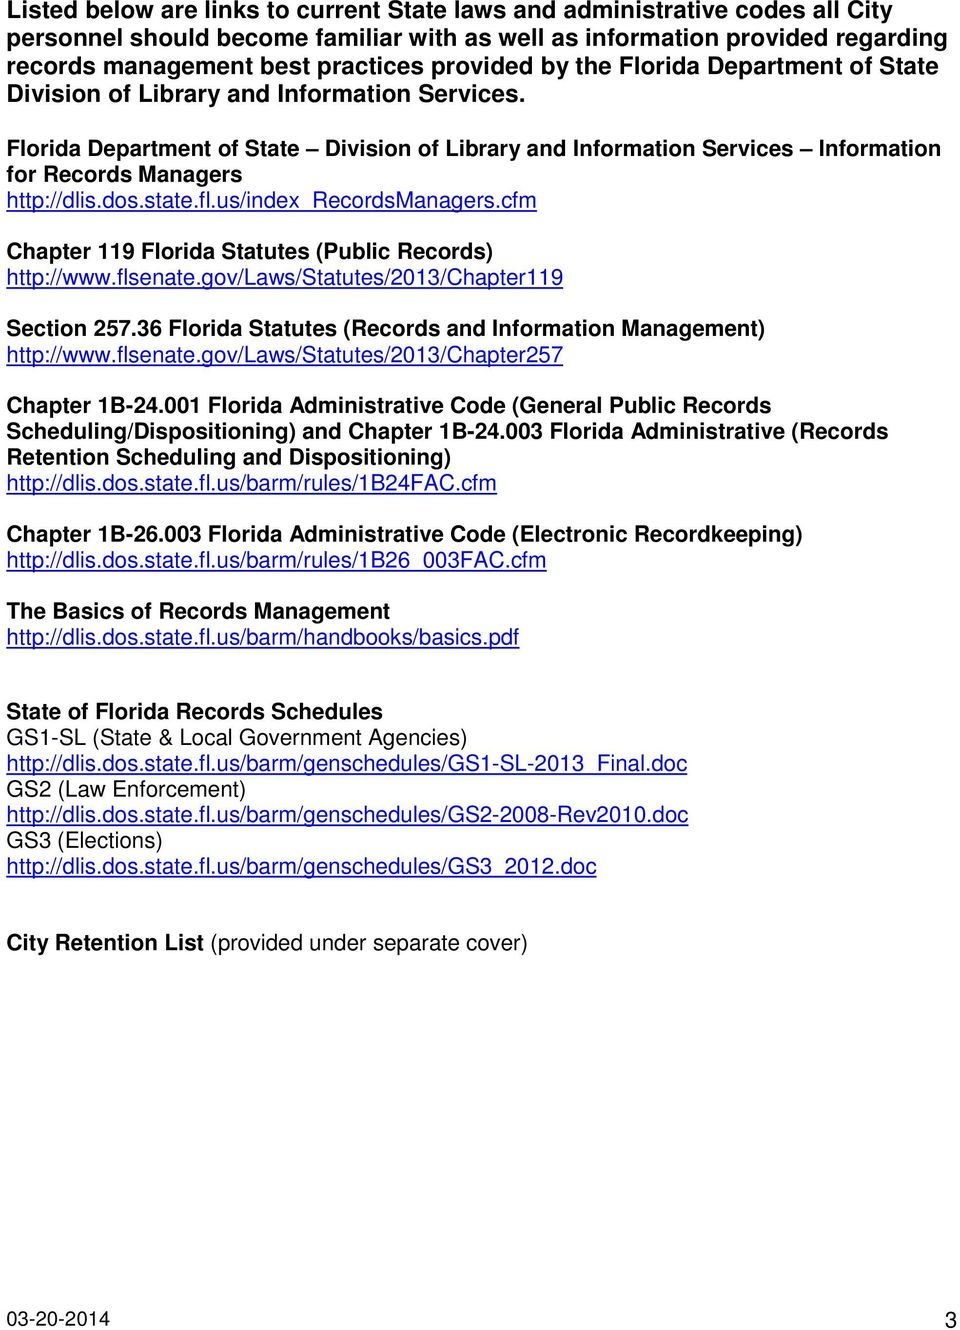 Florida Department of State Division of Library and Information Services Information for Records Managers http://dlis.dos.state.fl.us/index_recordsmanagers.